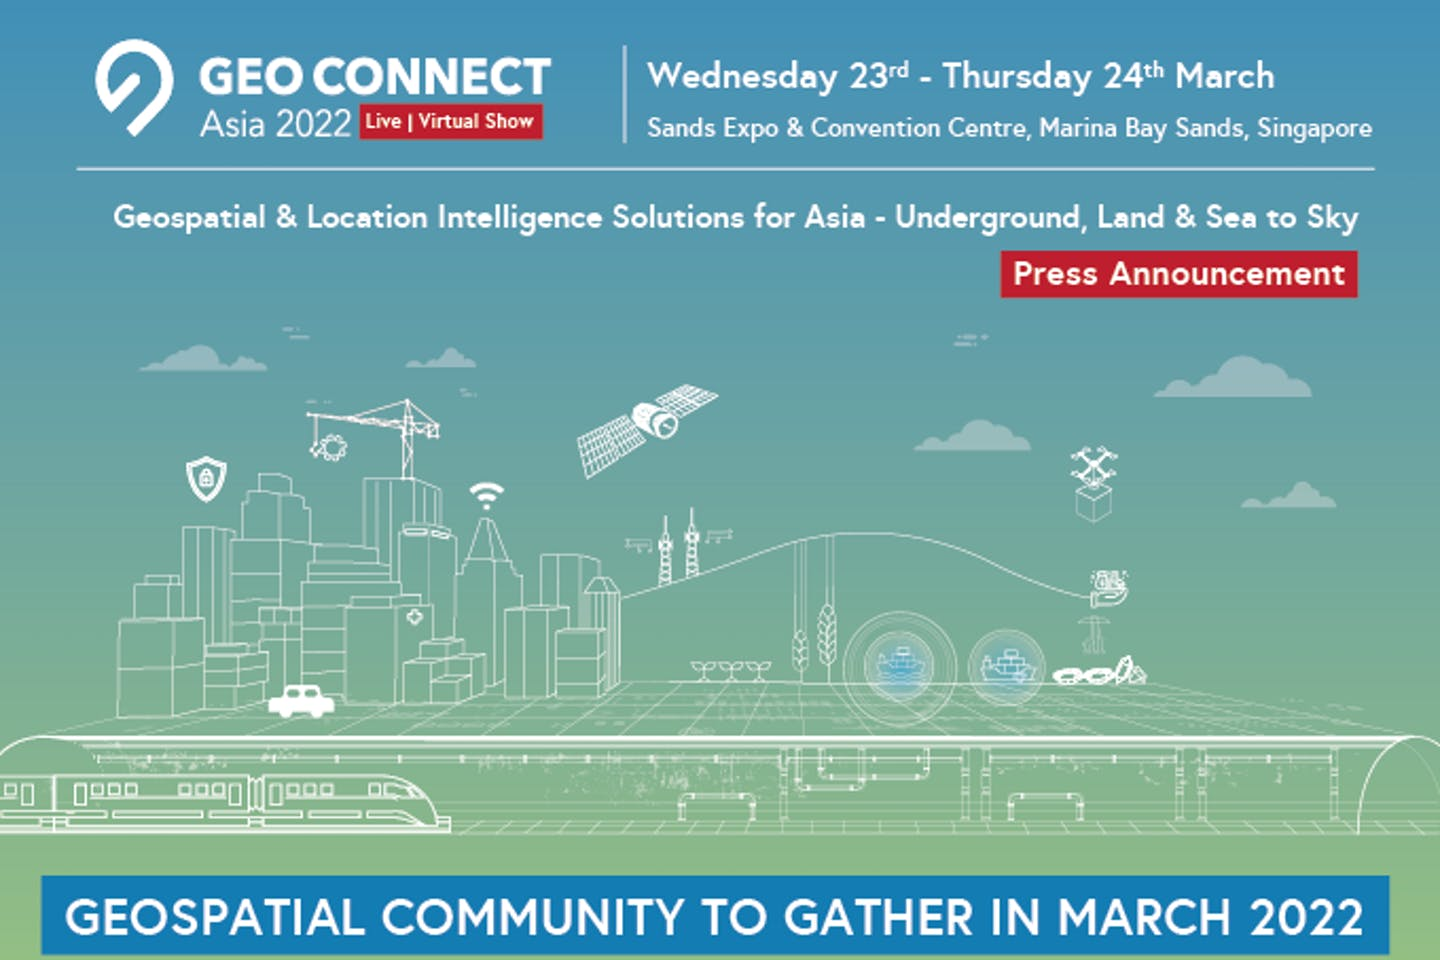 Geo Connect Asia 2022 launches with focus on addressing key regional challenges